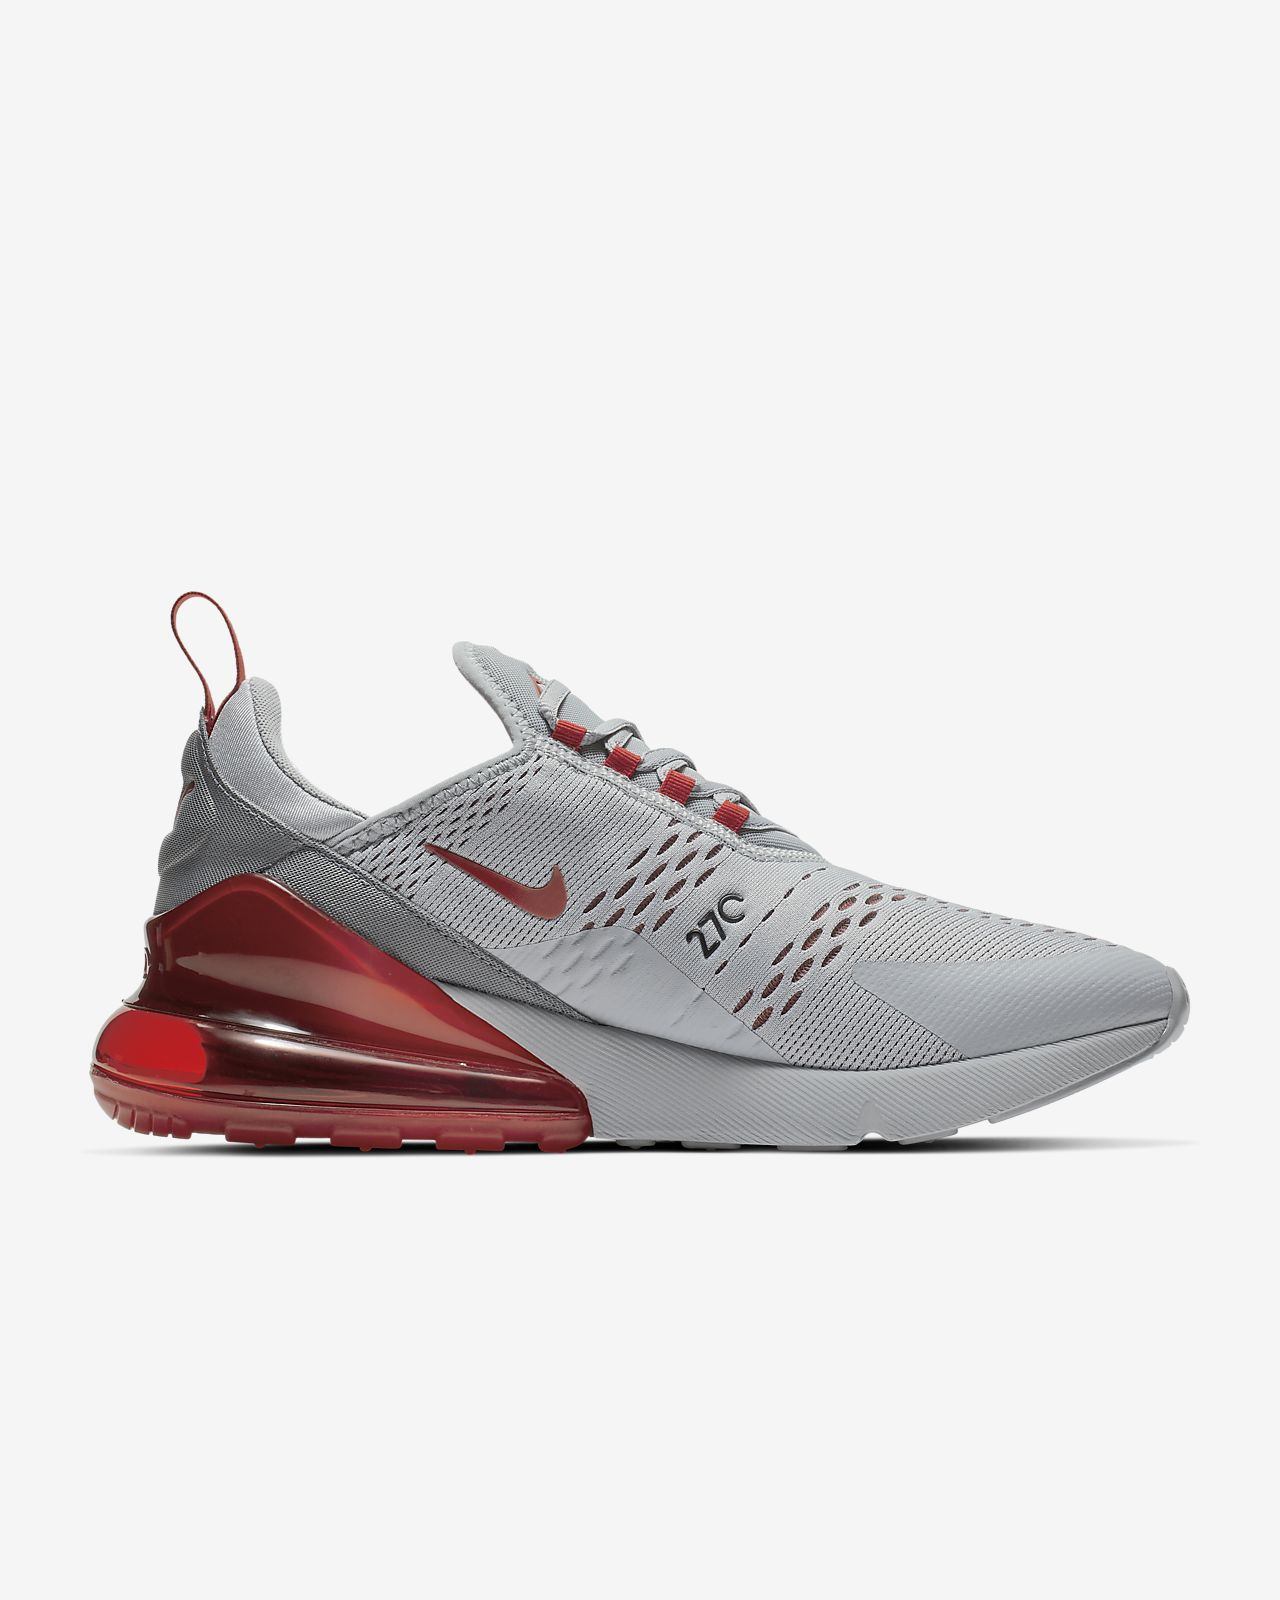 lowest price a3b3d 2a7ff ... Nike Air Max 270 Men s Shoe